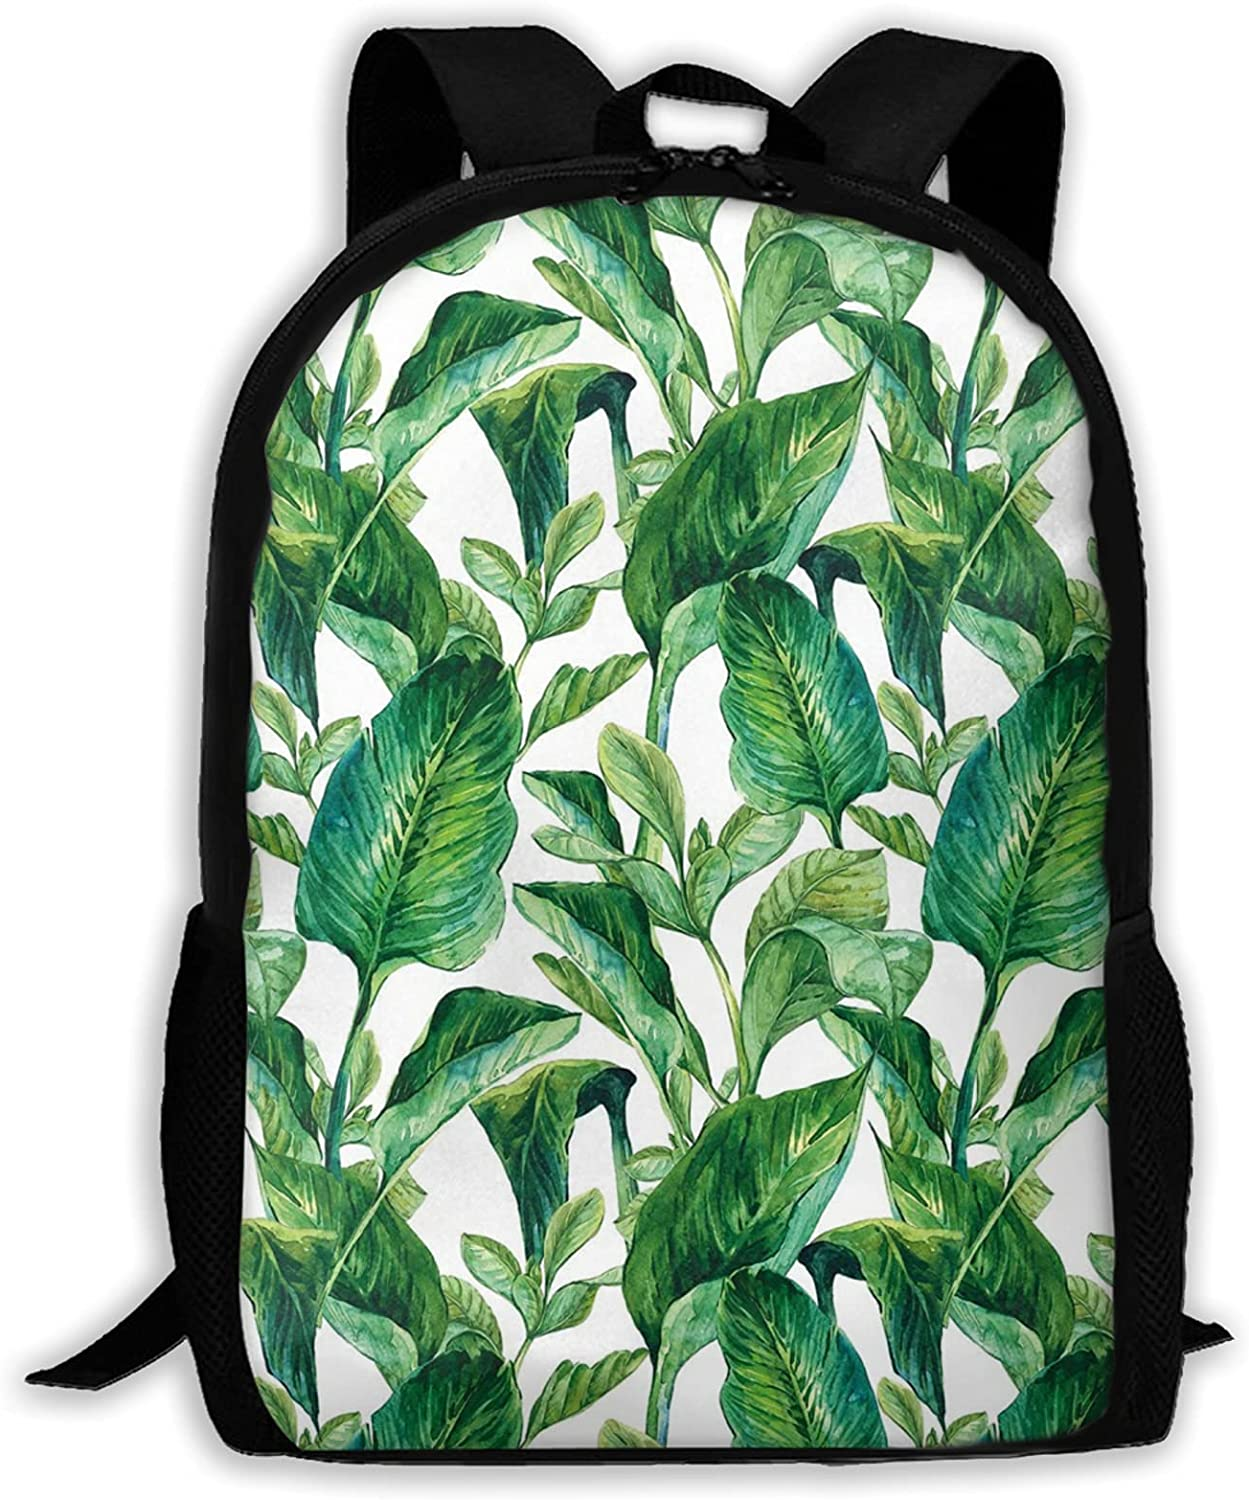 Tropical Leaves Printed Backpack Teen Back Limited time for free shipping outlet Laptop And Girls Boys